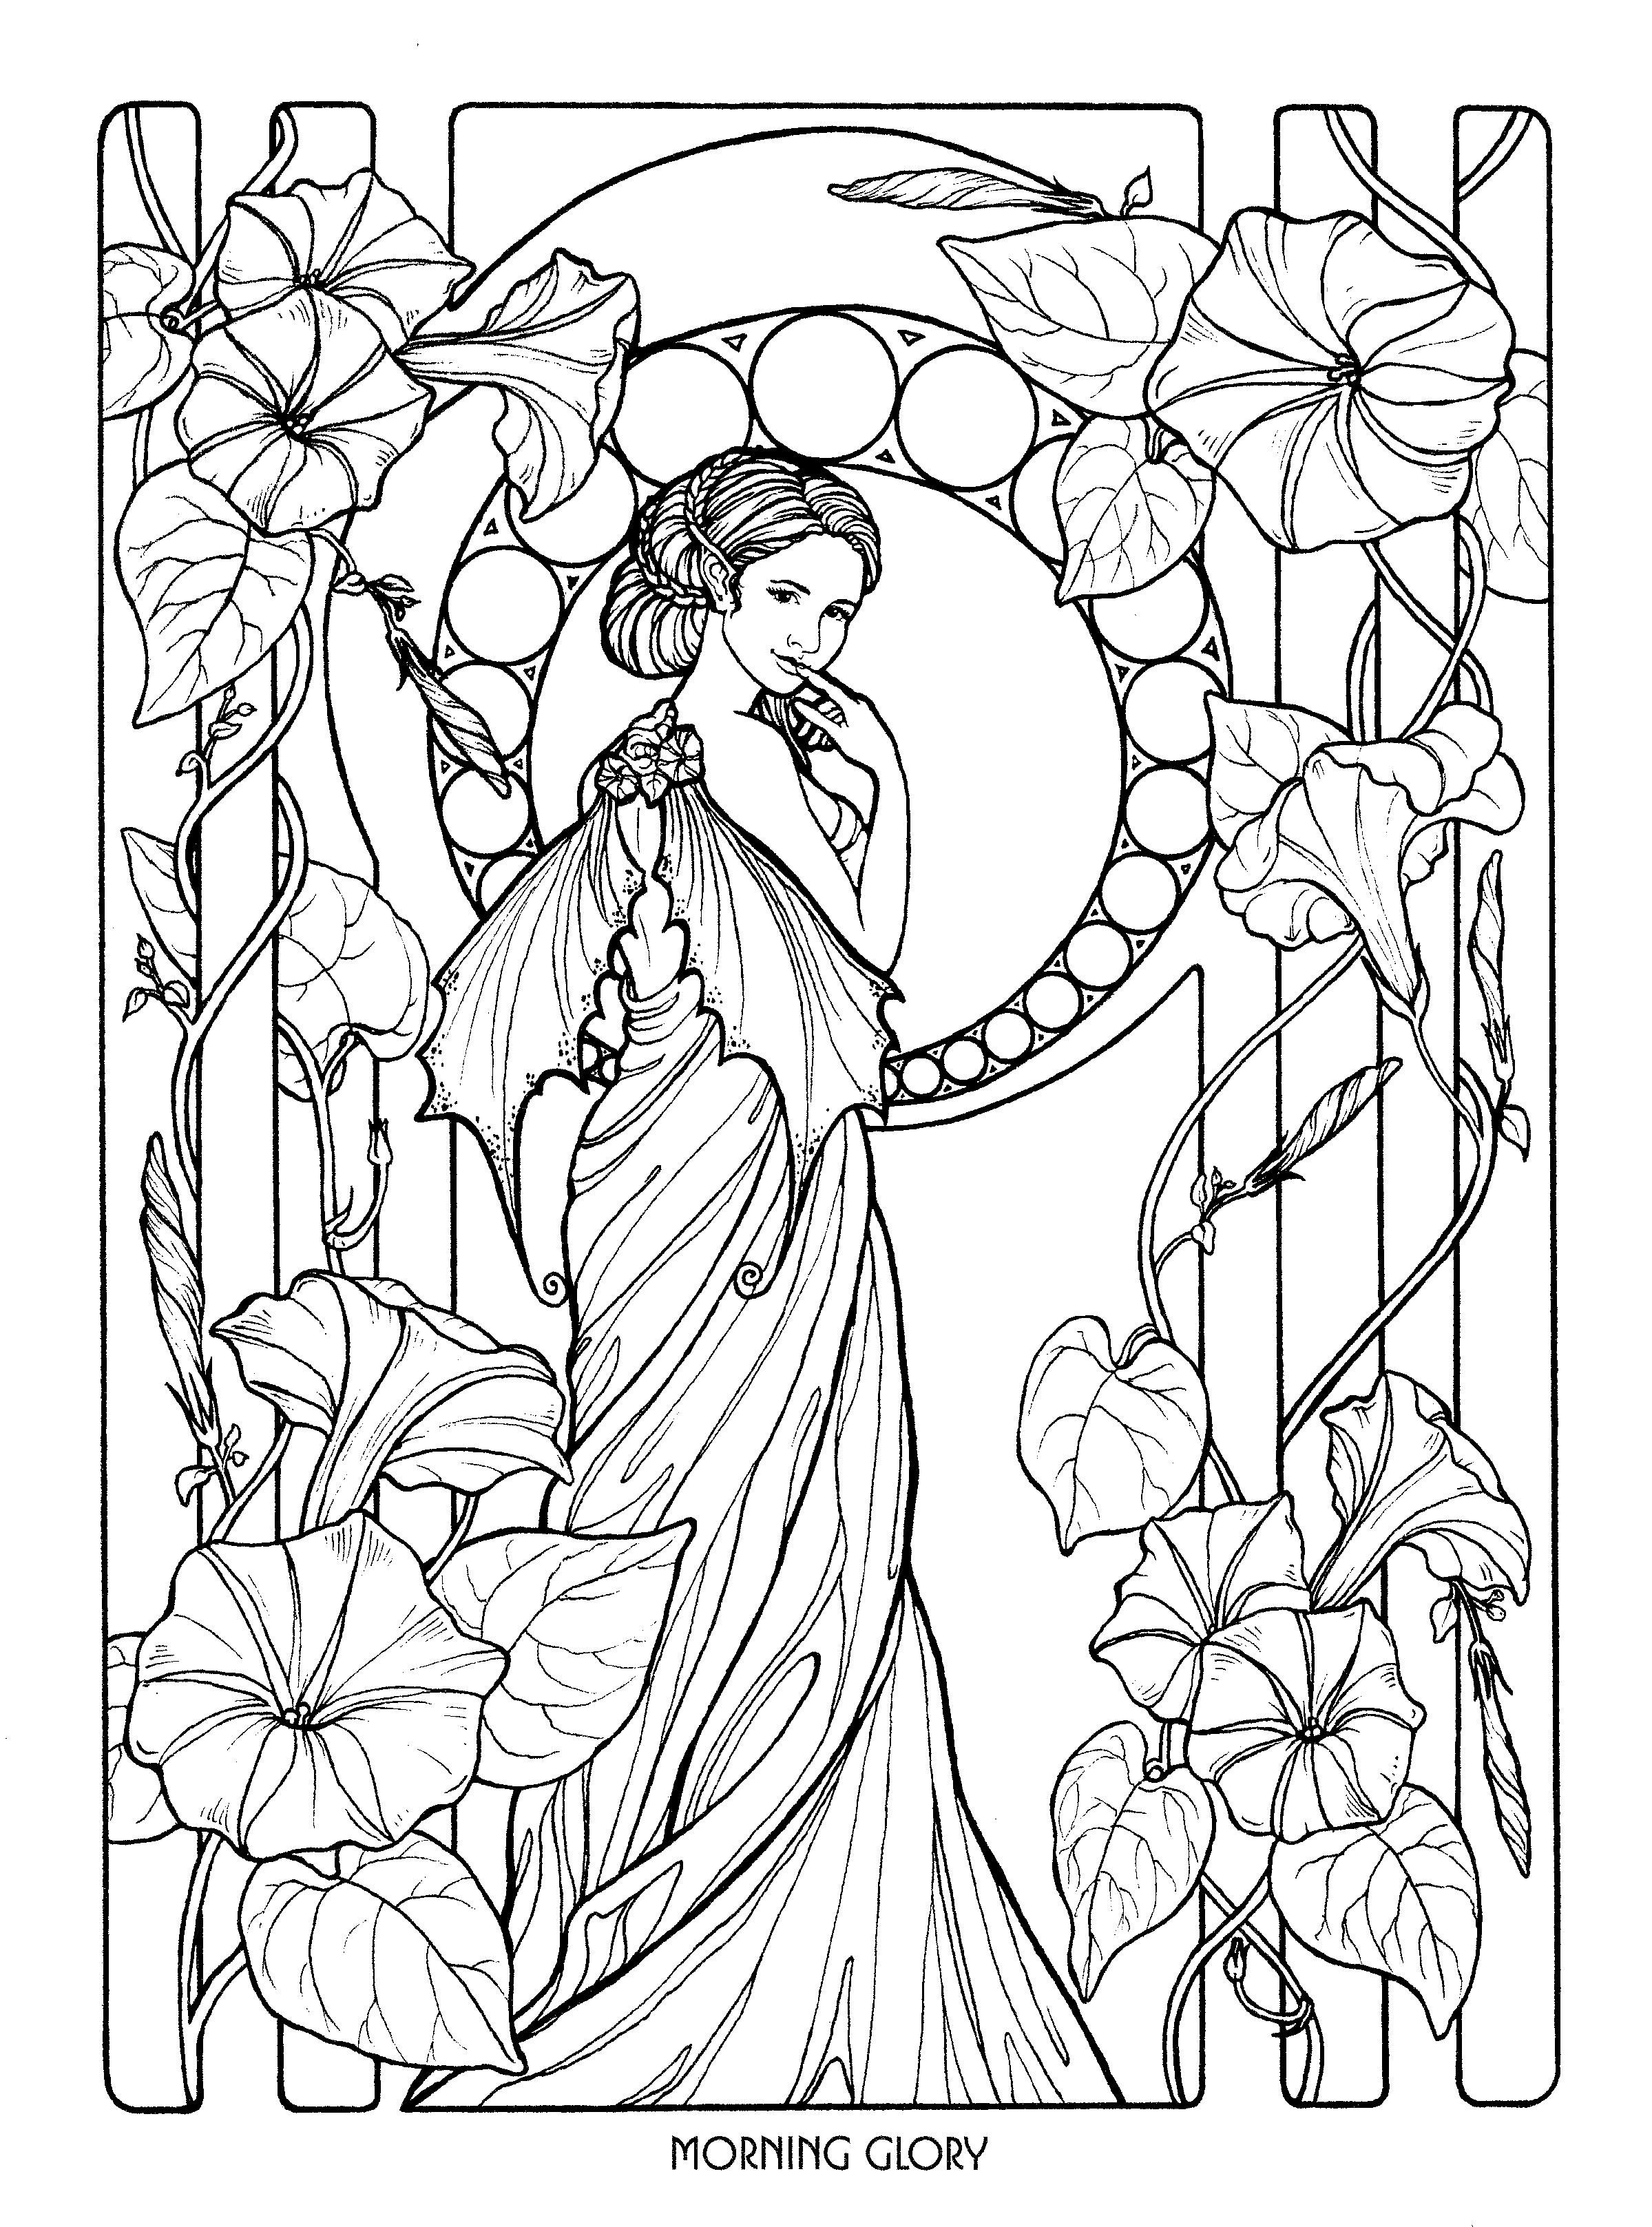 Fairy 24 Fairy coloring pages Fairy coloring Coloring pages